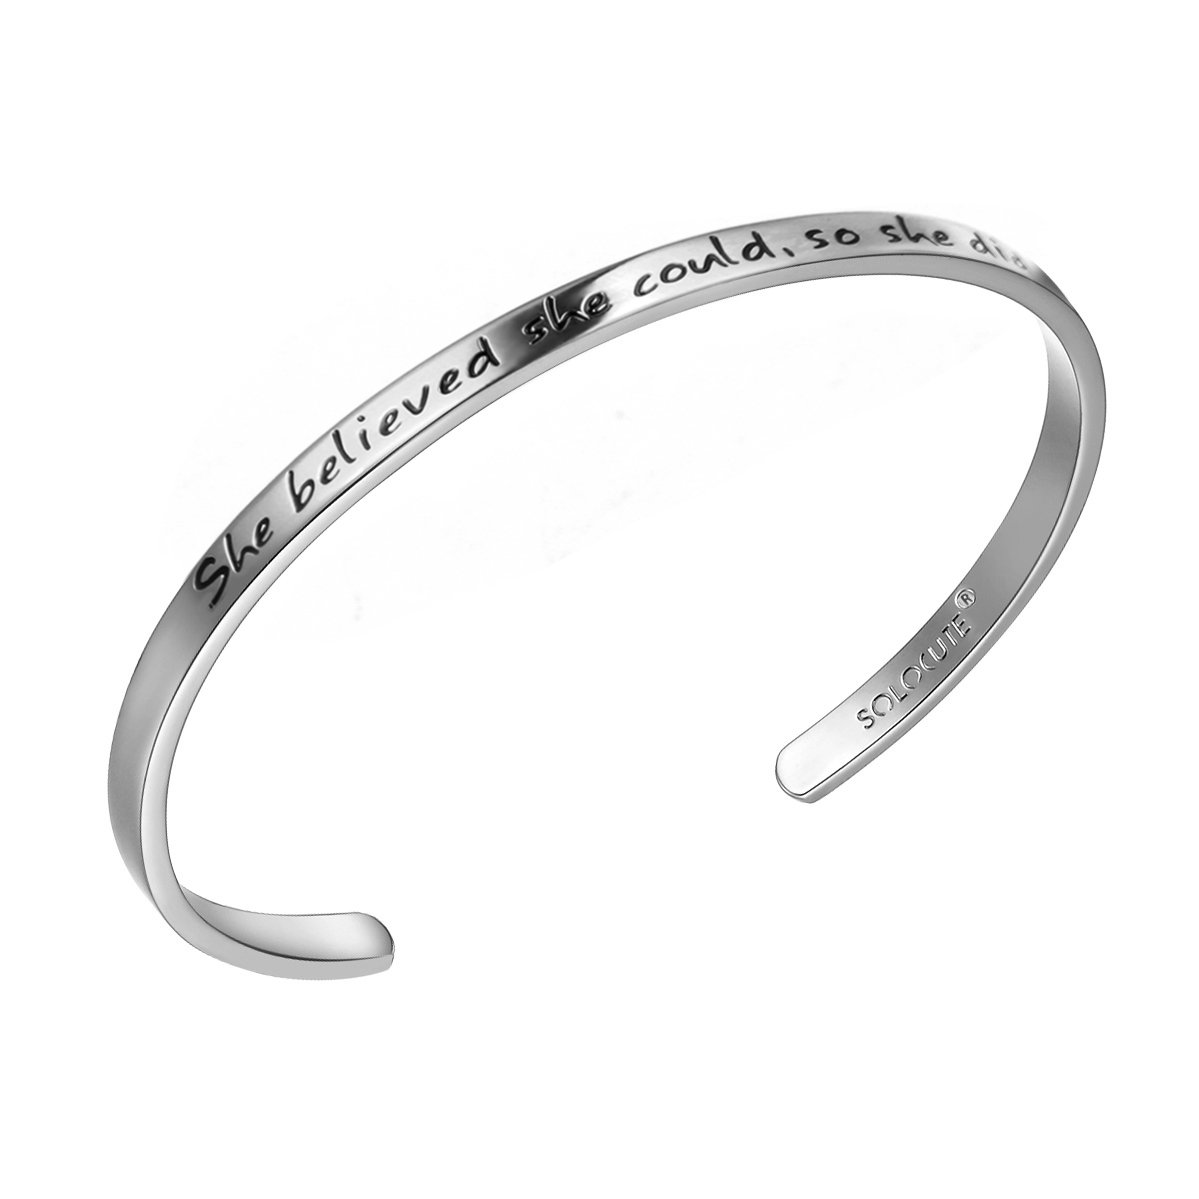 Solocute Cuff Bangle Bracelet Engraved She Believed she Could so she did Inspirational Jewelry, for Christmas Day, Thanksgiving Day and Birthday